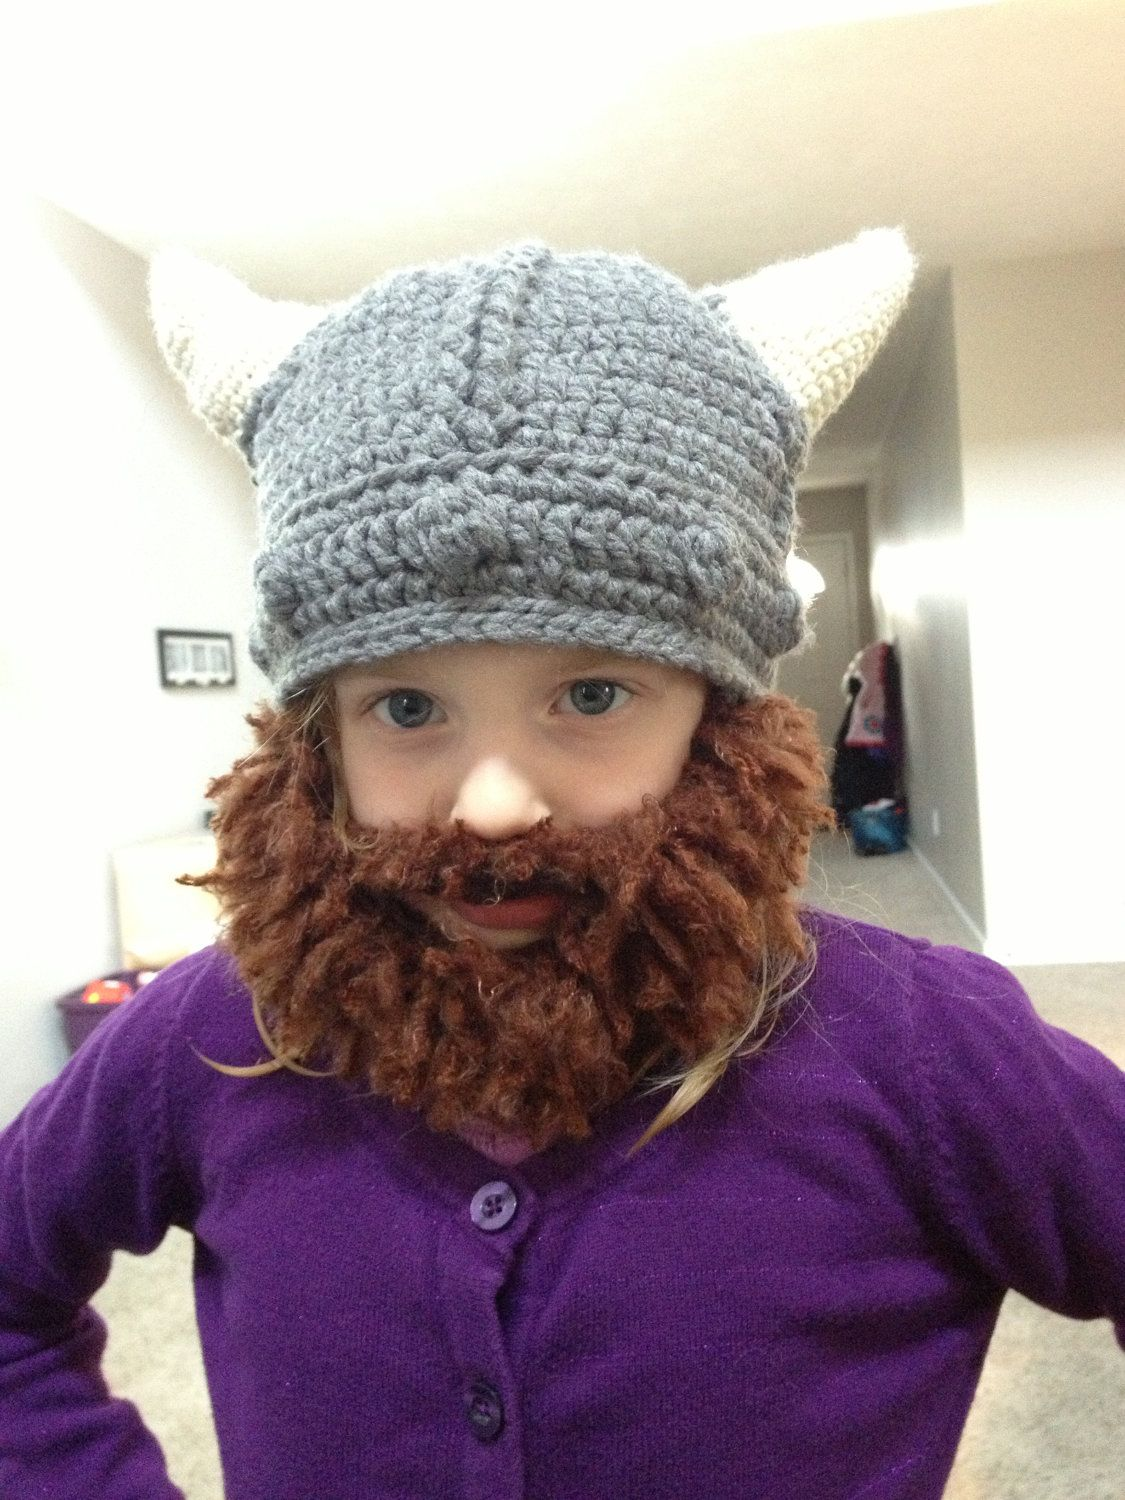 Viking Hat Knitting Pattern Free : Fuzzy Beard Crochet Viking hat. Crochet hats Pinterest ...